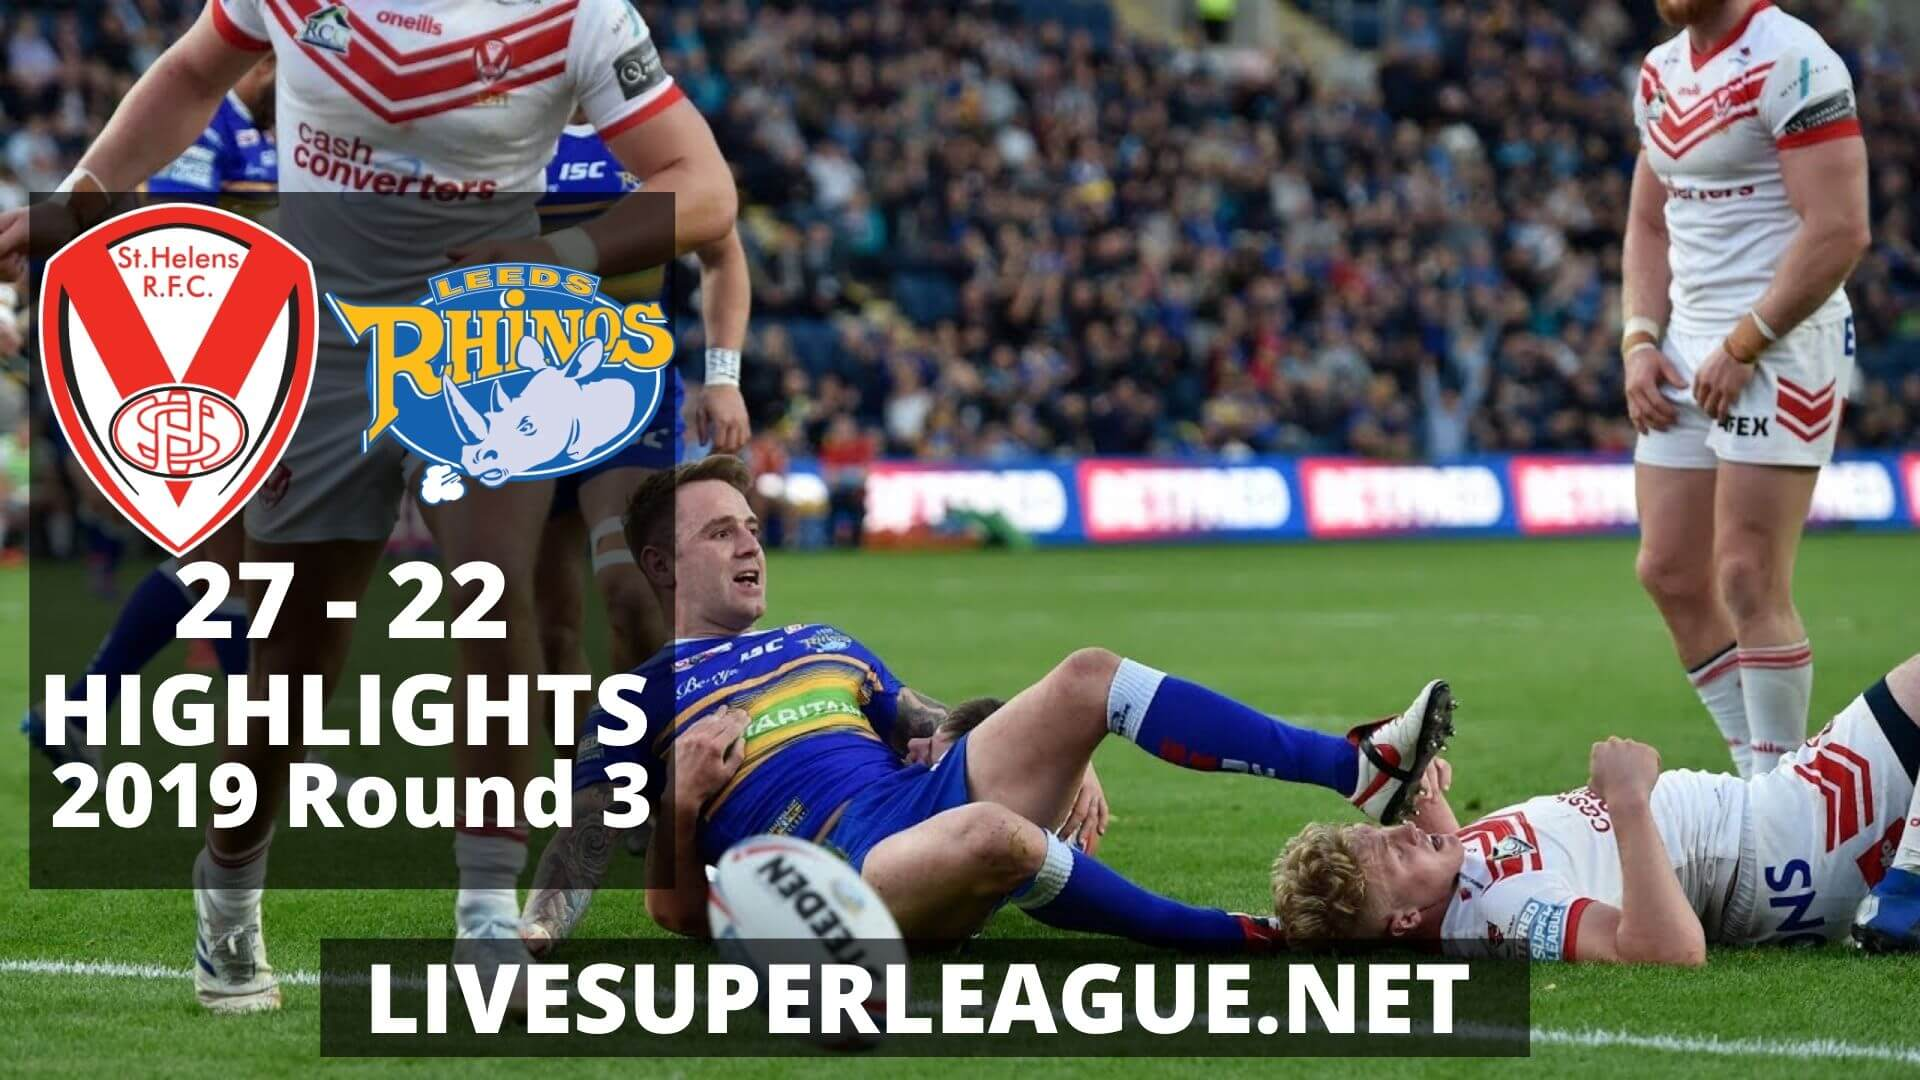 St Helens Vs Leeds Rhinos Highlights 2019 Round 3